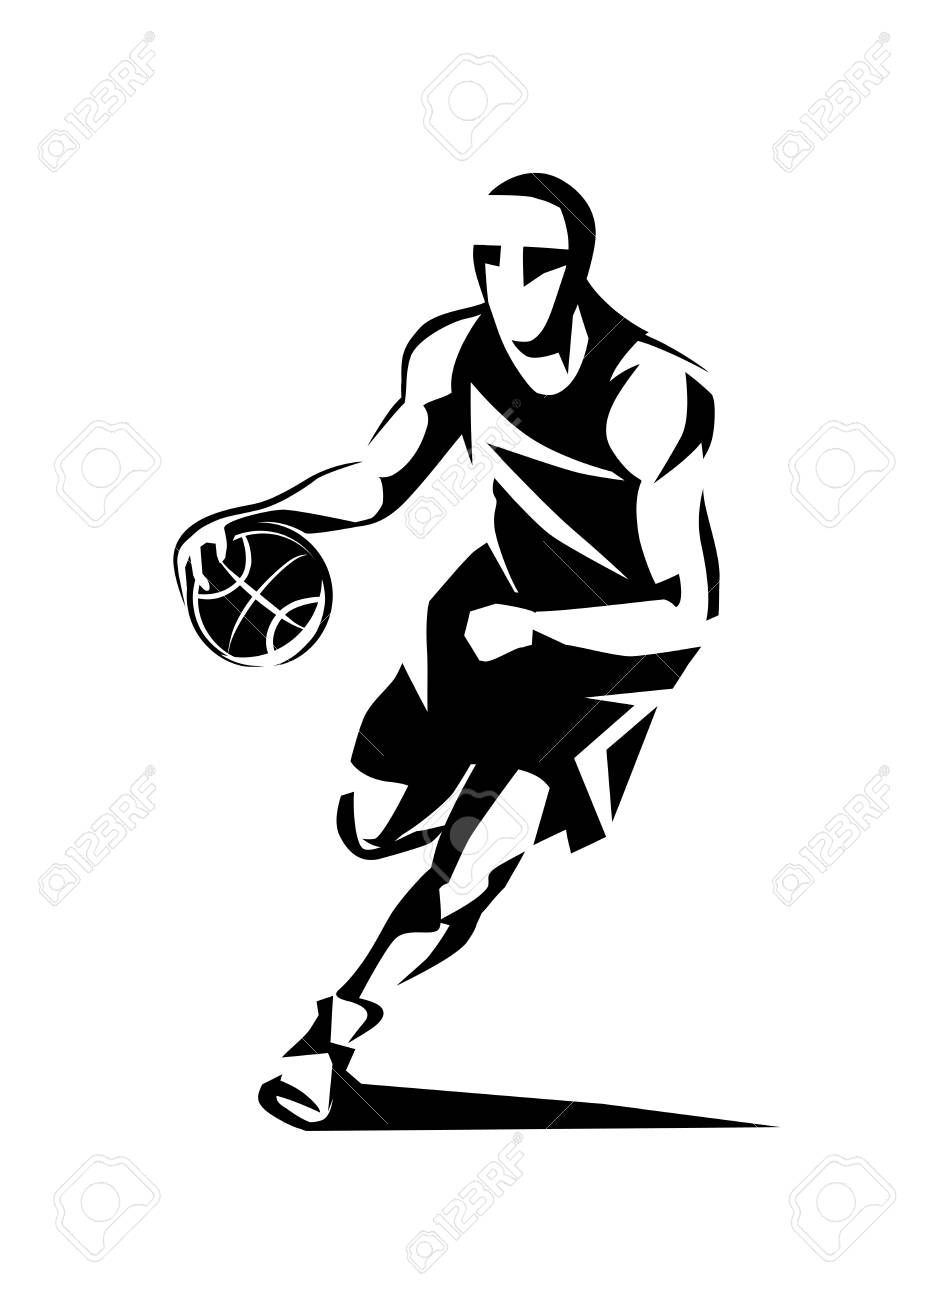 Basketball Player Stylized Vector Silhouette Logo Template In Outlined Sketch Style Ad Vector Silh Illustrator Inspiration Stylized Basketball Players